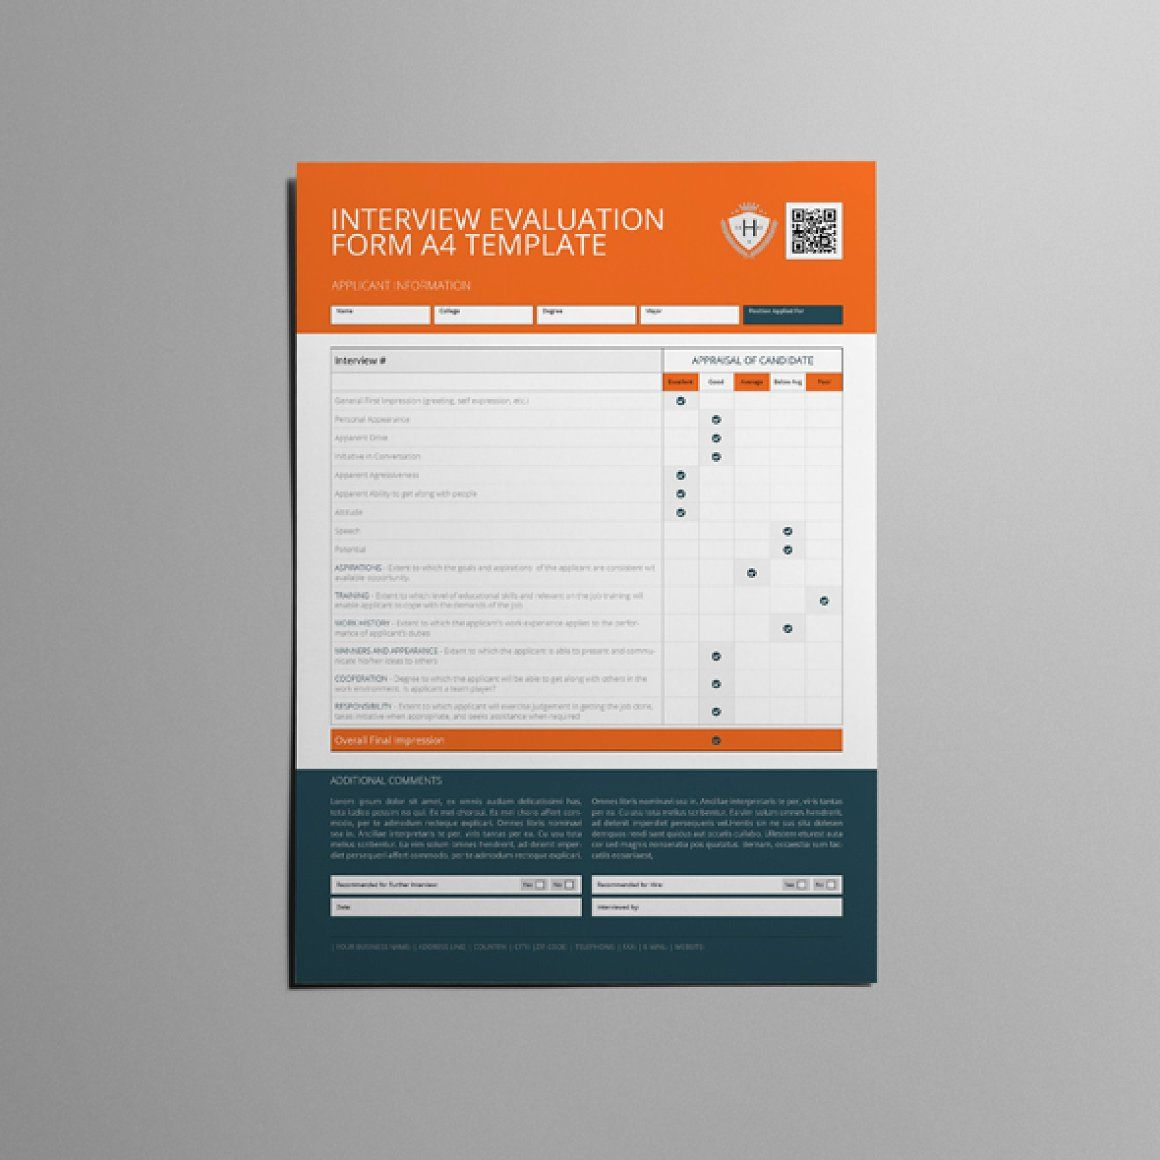 Interview Evaluation Form A4 - Templates | Templates